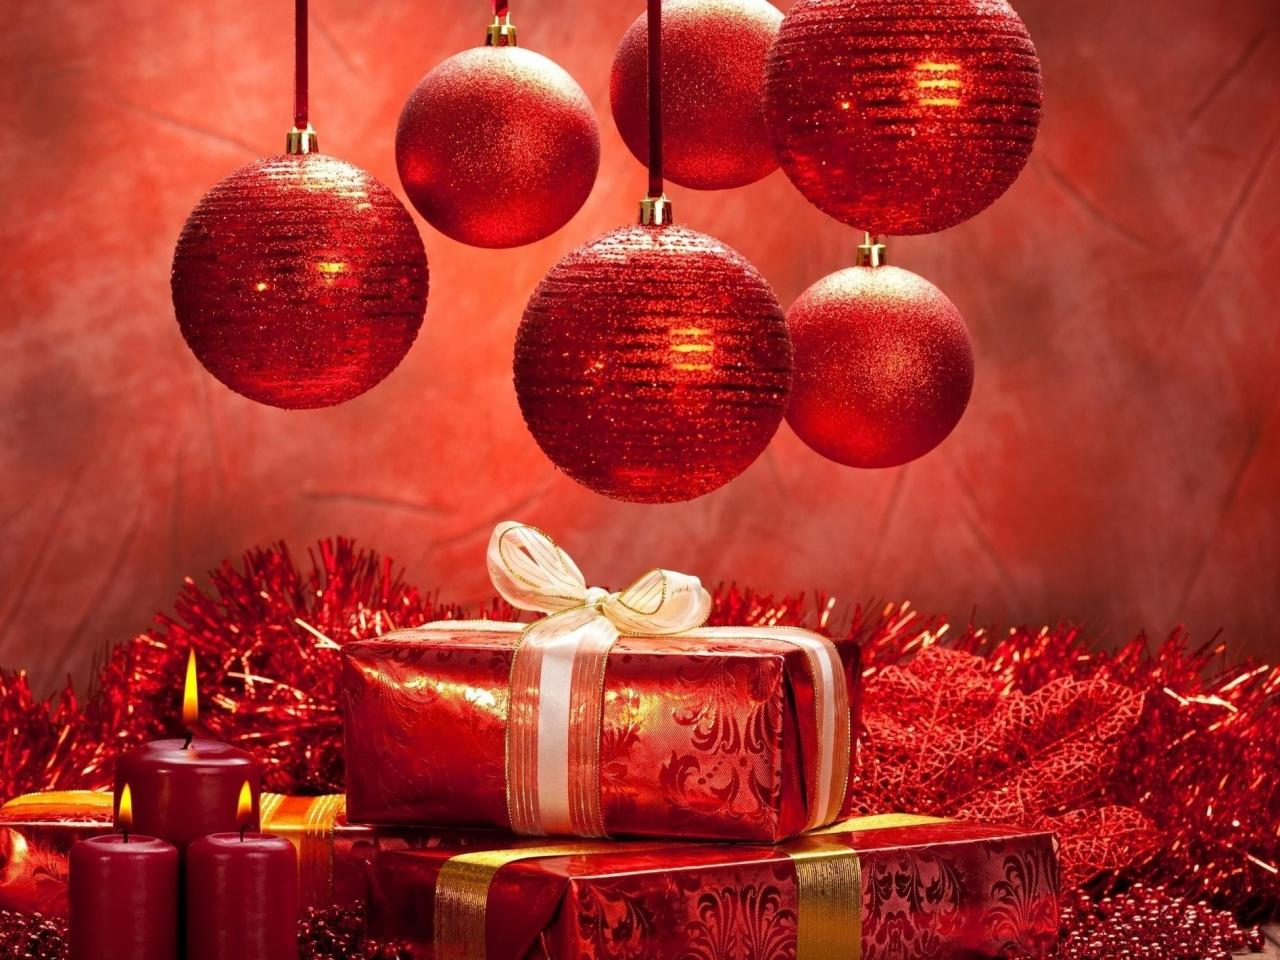 New Year Christmas Decorations Gifts Candles Backgrounds 1280x960